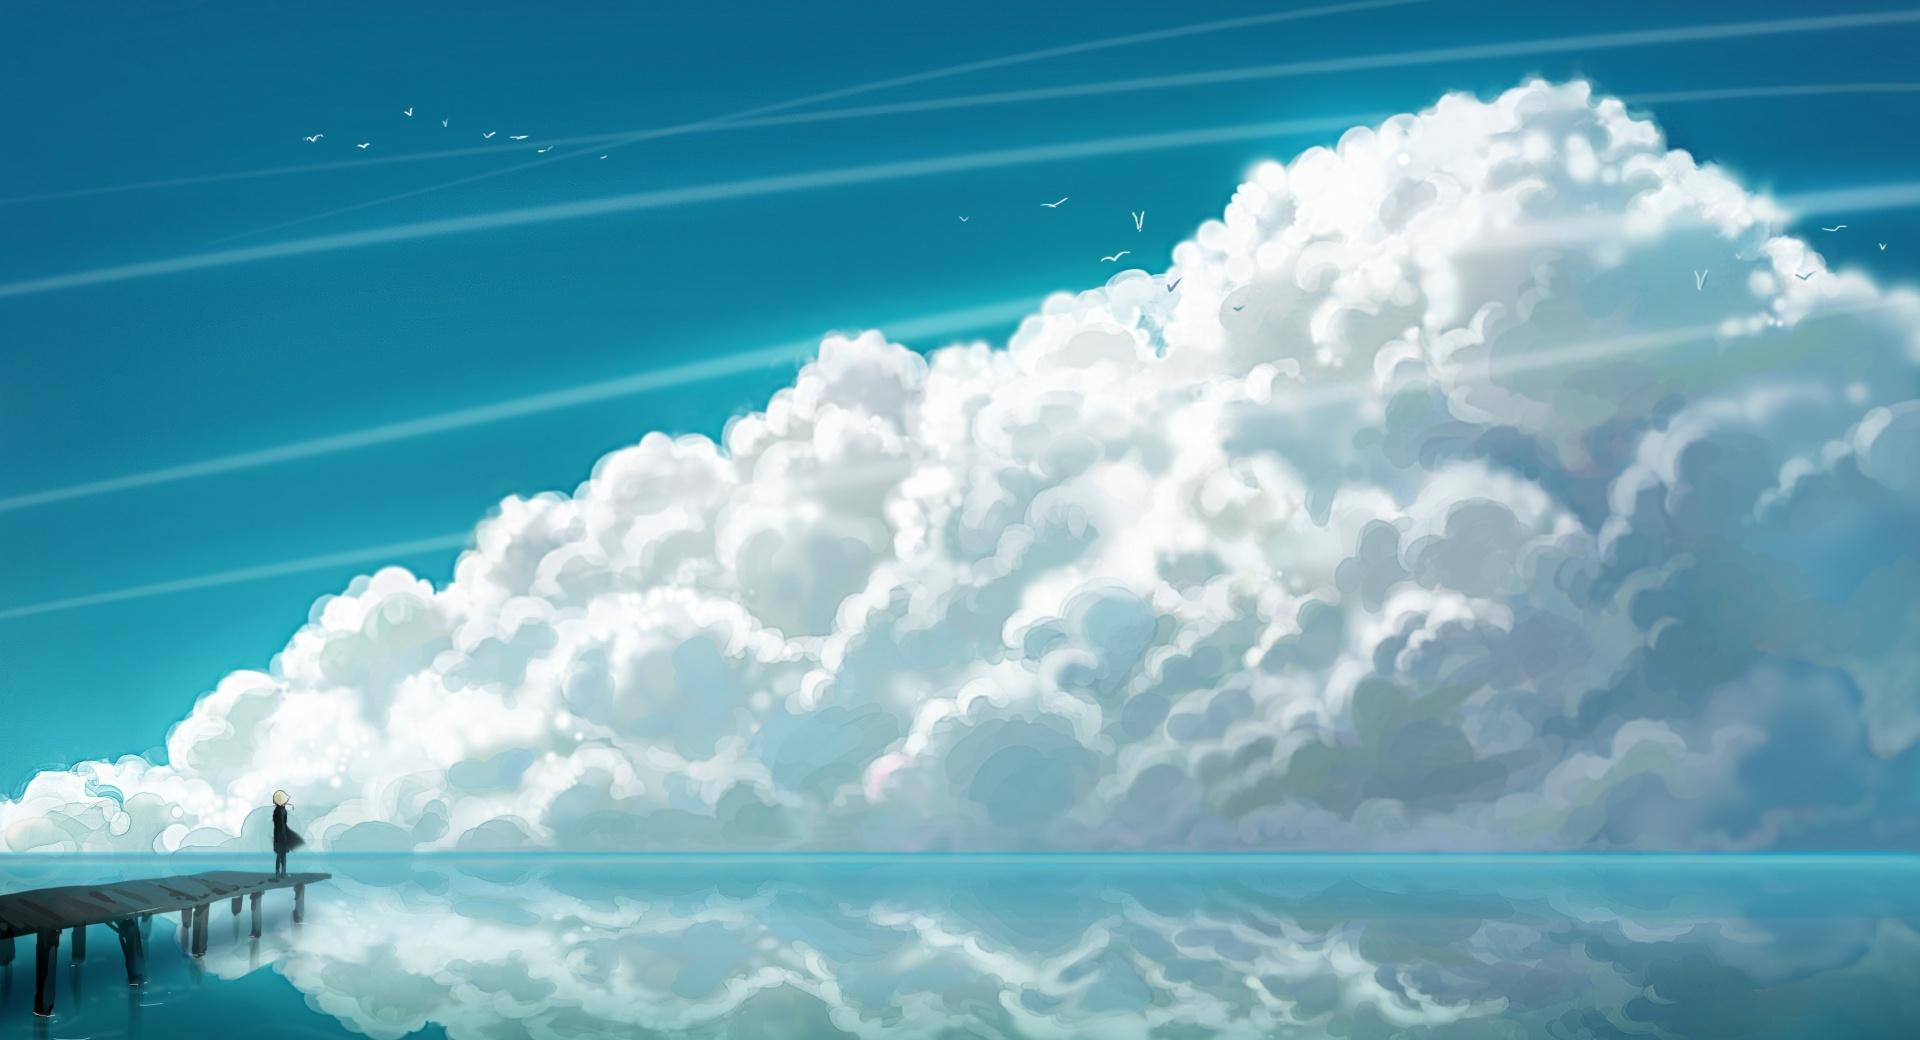 Sky Clouds wallpapers HD quality